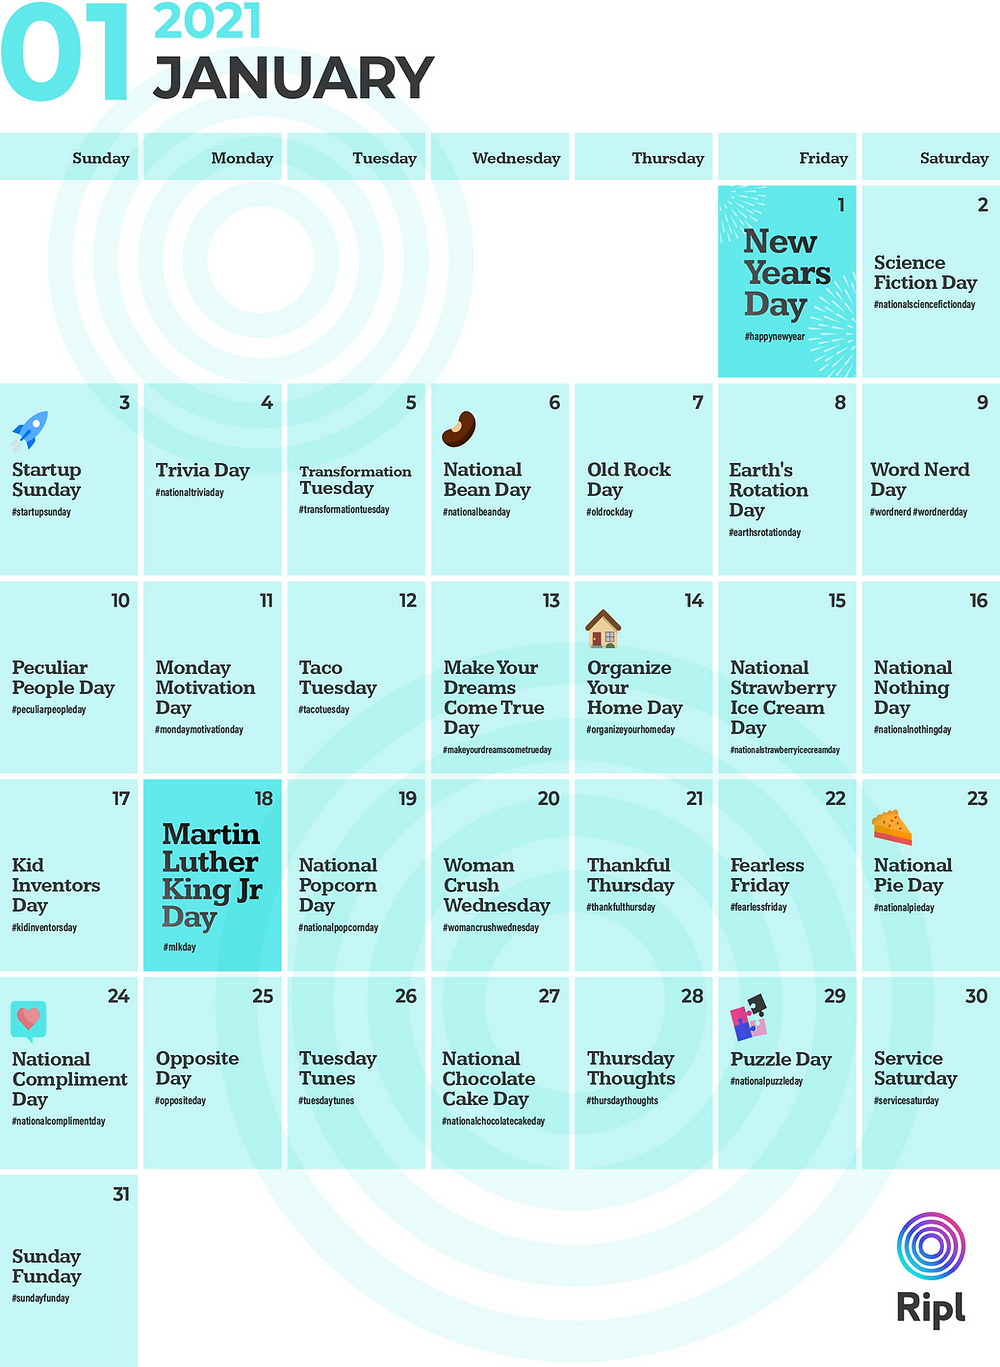 January 2021 social media holiday content calendar for small businesses